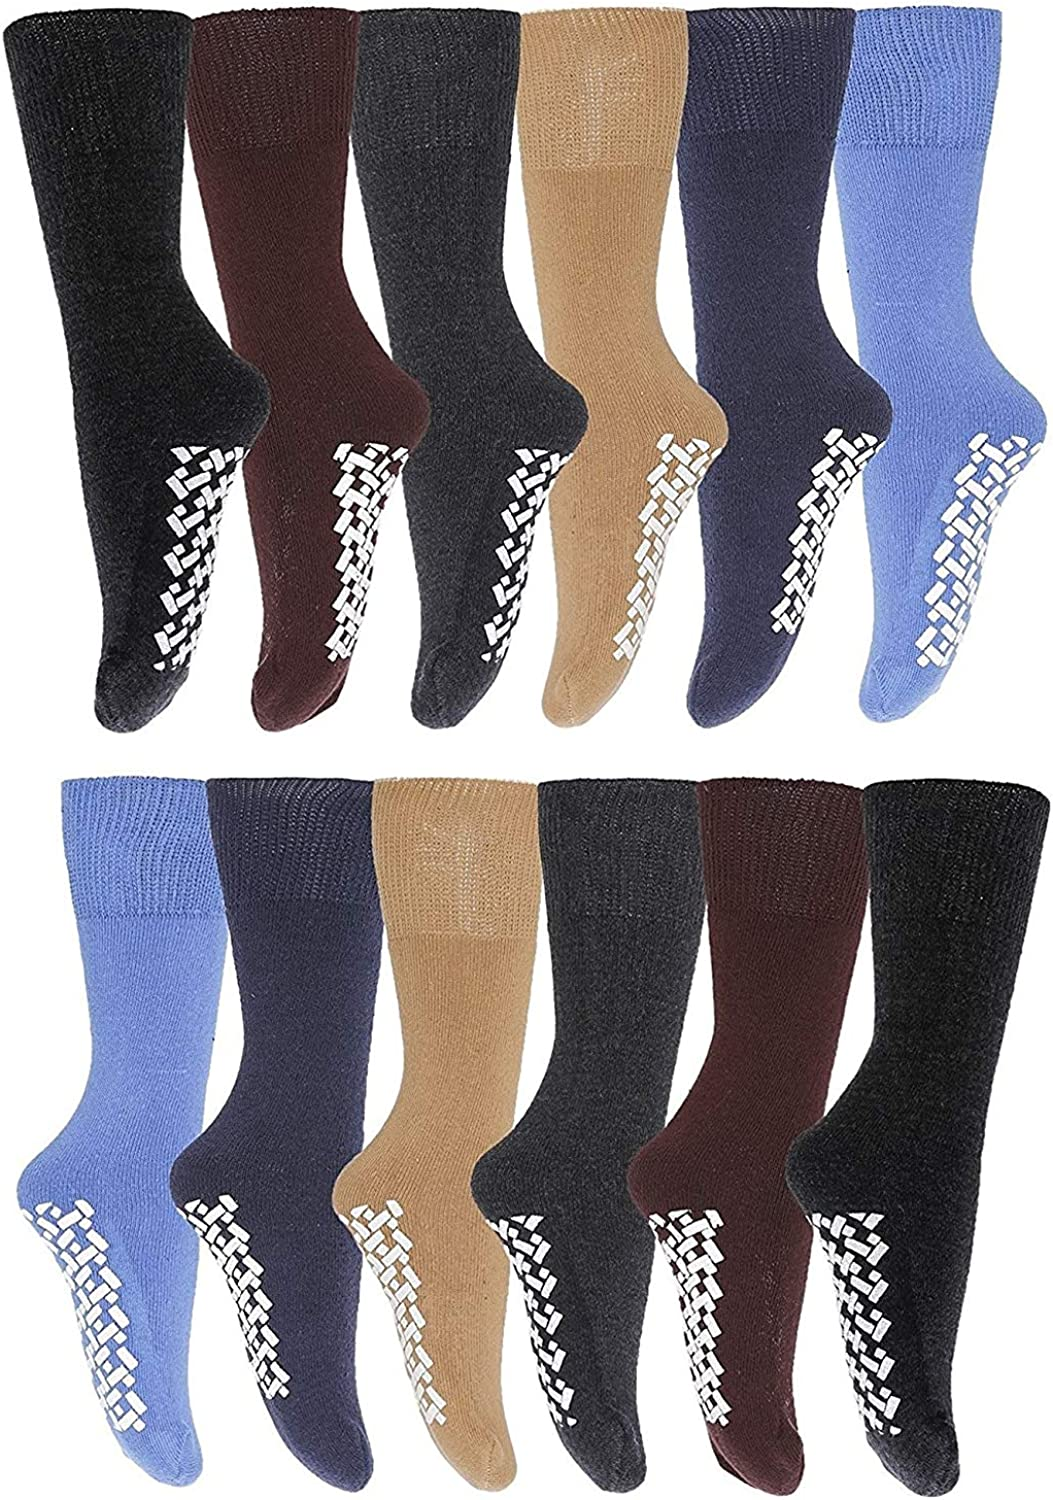 6 and 12 Pairs of Mens & Womens Non Skid/Slip Medical Socks, Cotton With Rubber Gripper Bottom, Assorted Colors